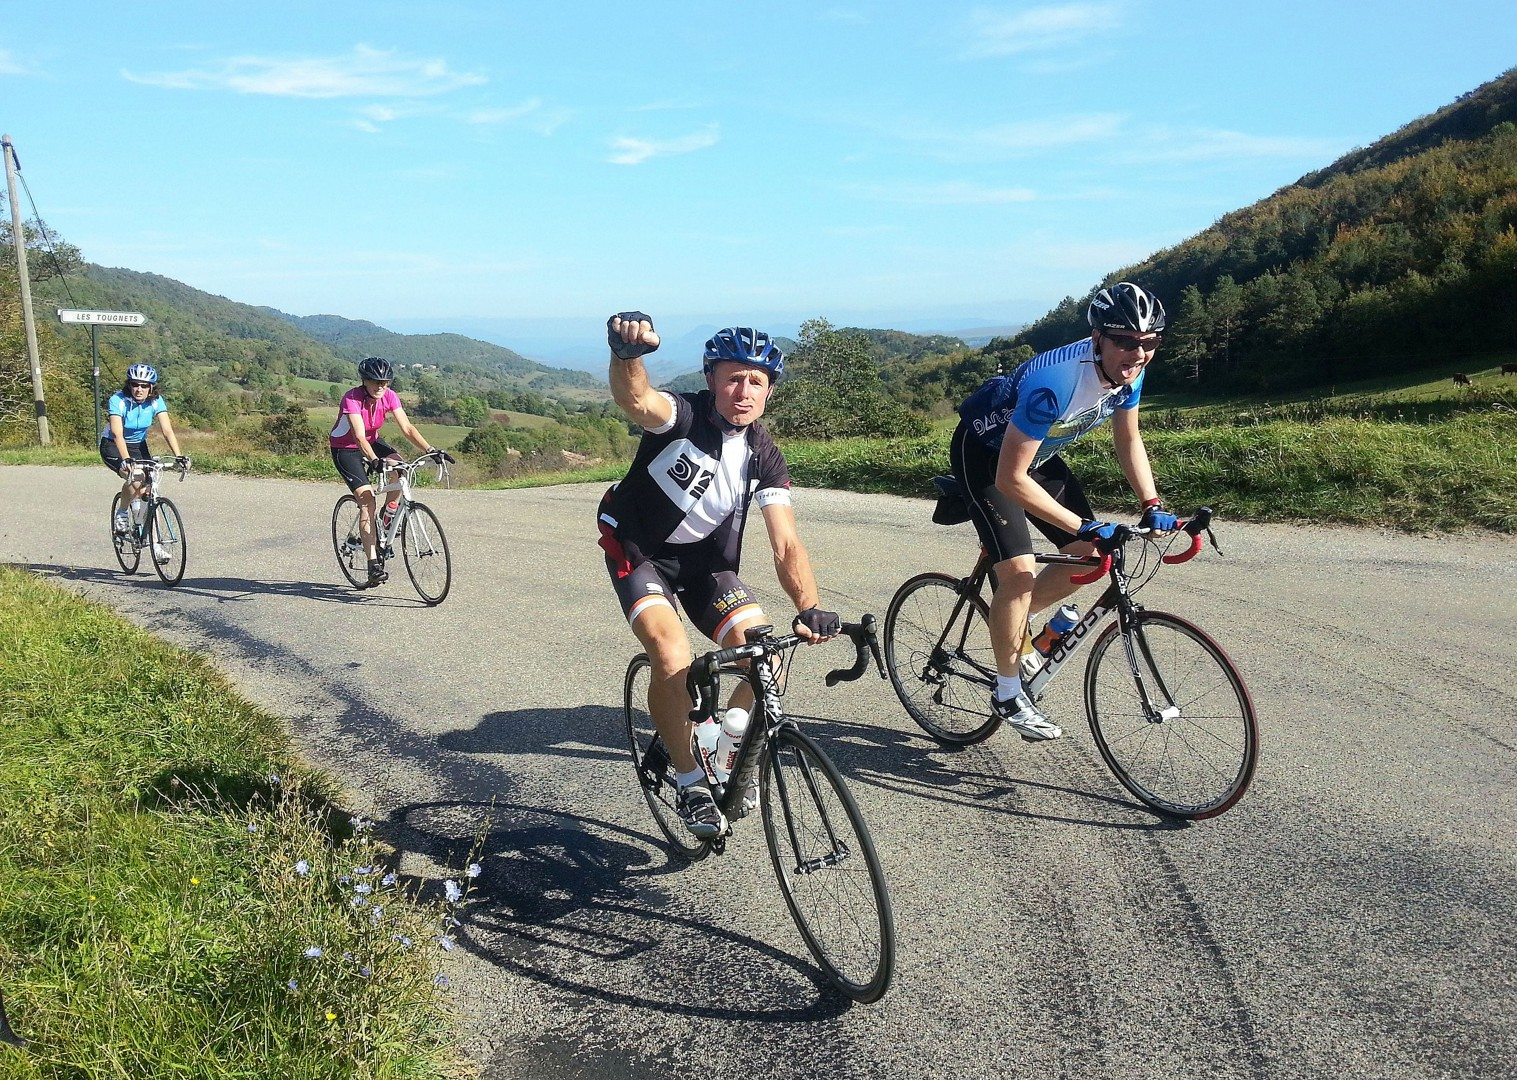 road-cycling-fitness-week-group-cycling.jpg - France - Pyrenees Fitness Week - Guided Road Cycling Holiday (Grade 3-4) - Road Cycling